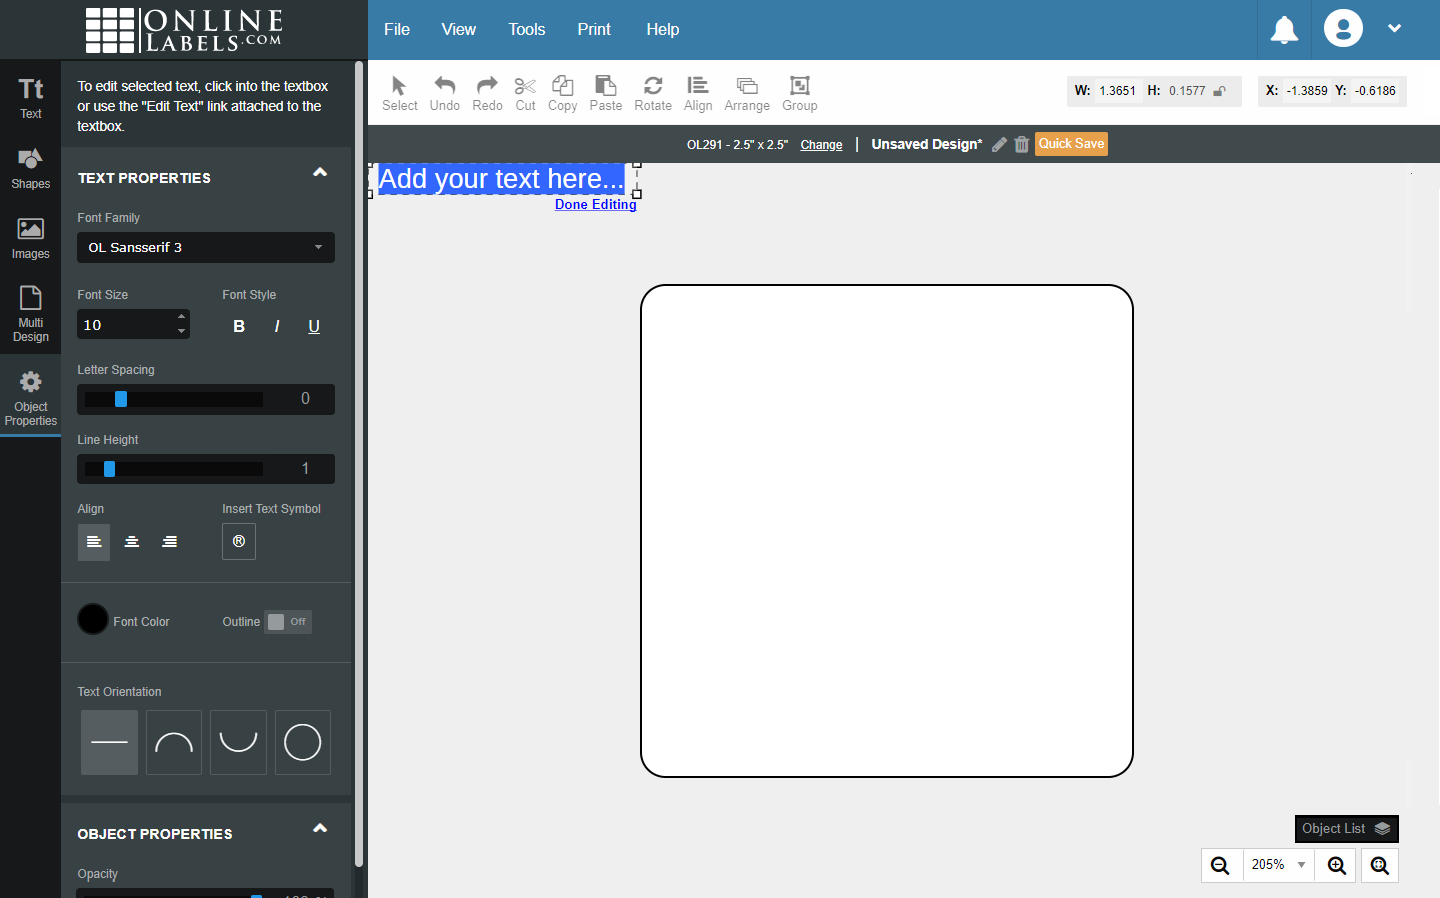 A new textbox with placeholder text selected